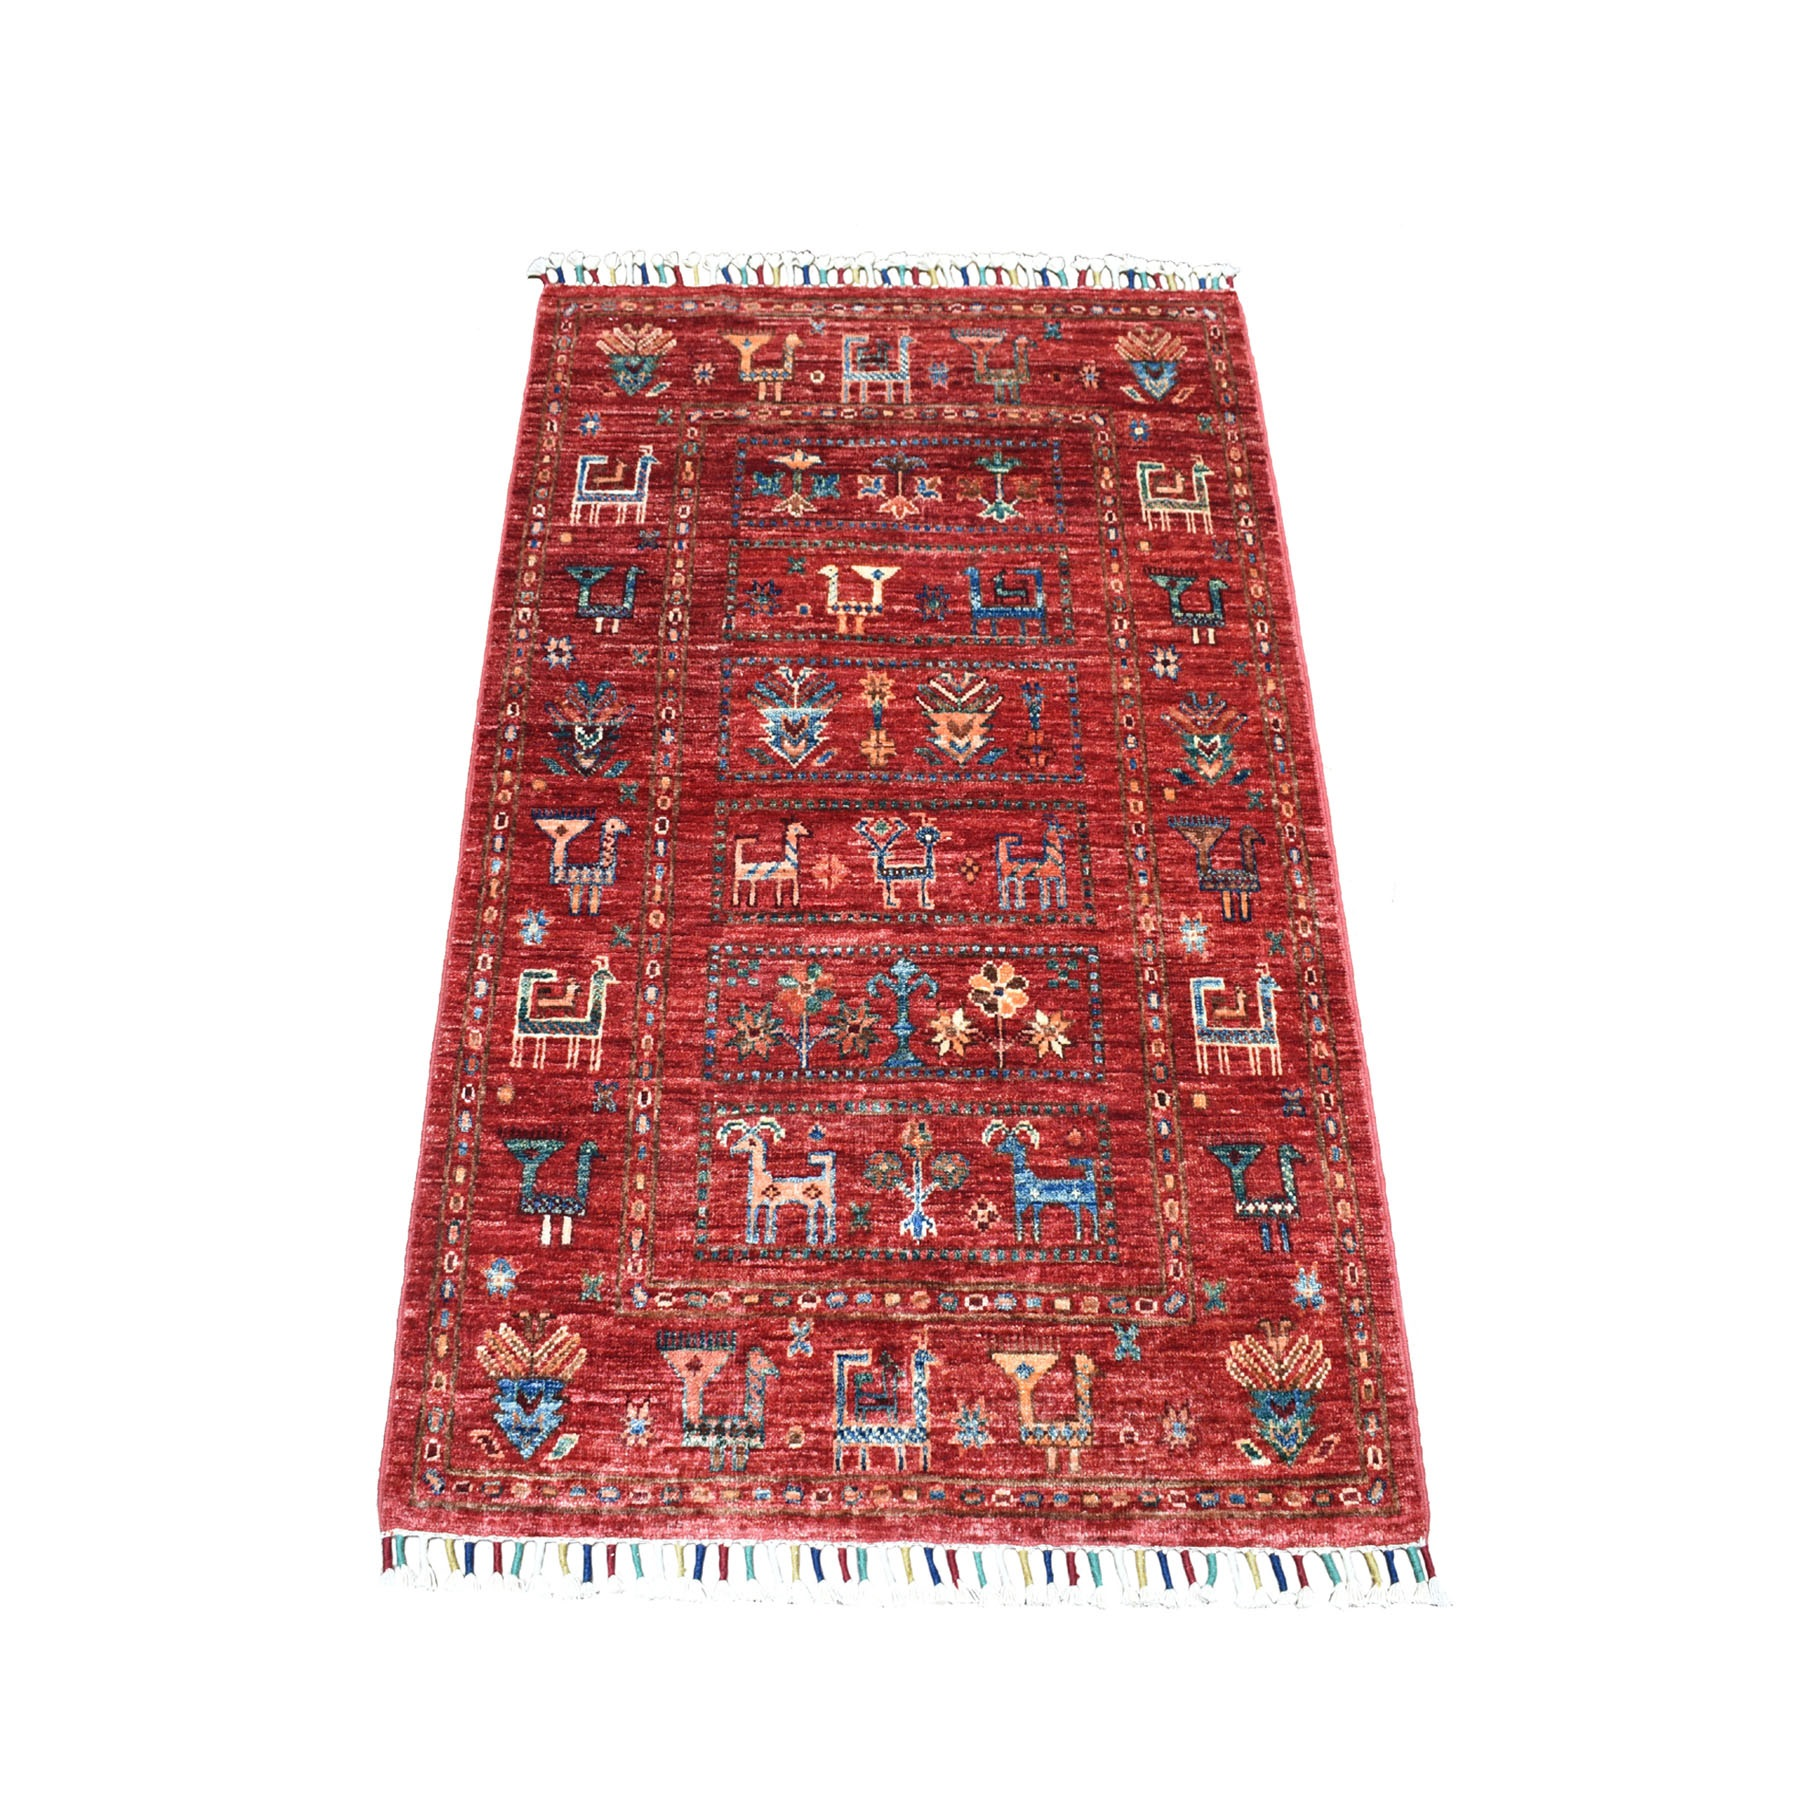 """2'8""""x4' Khorjin Design Colorful Super Kazak With Animals Pure Wool Hand Knotted Oriental Rug"""